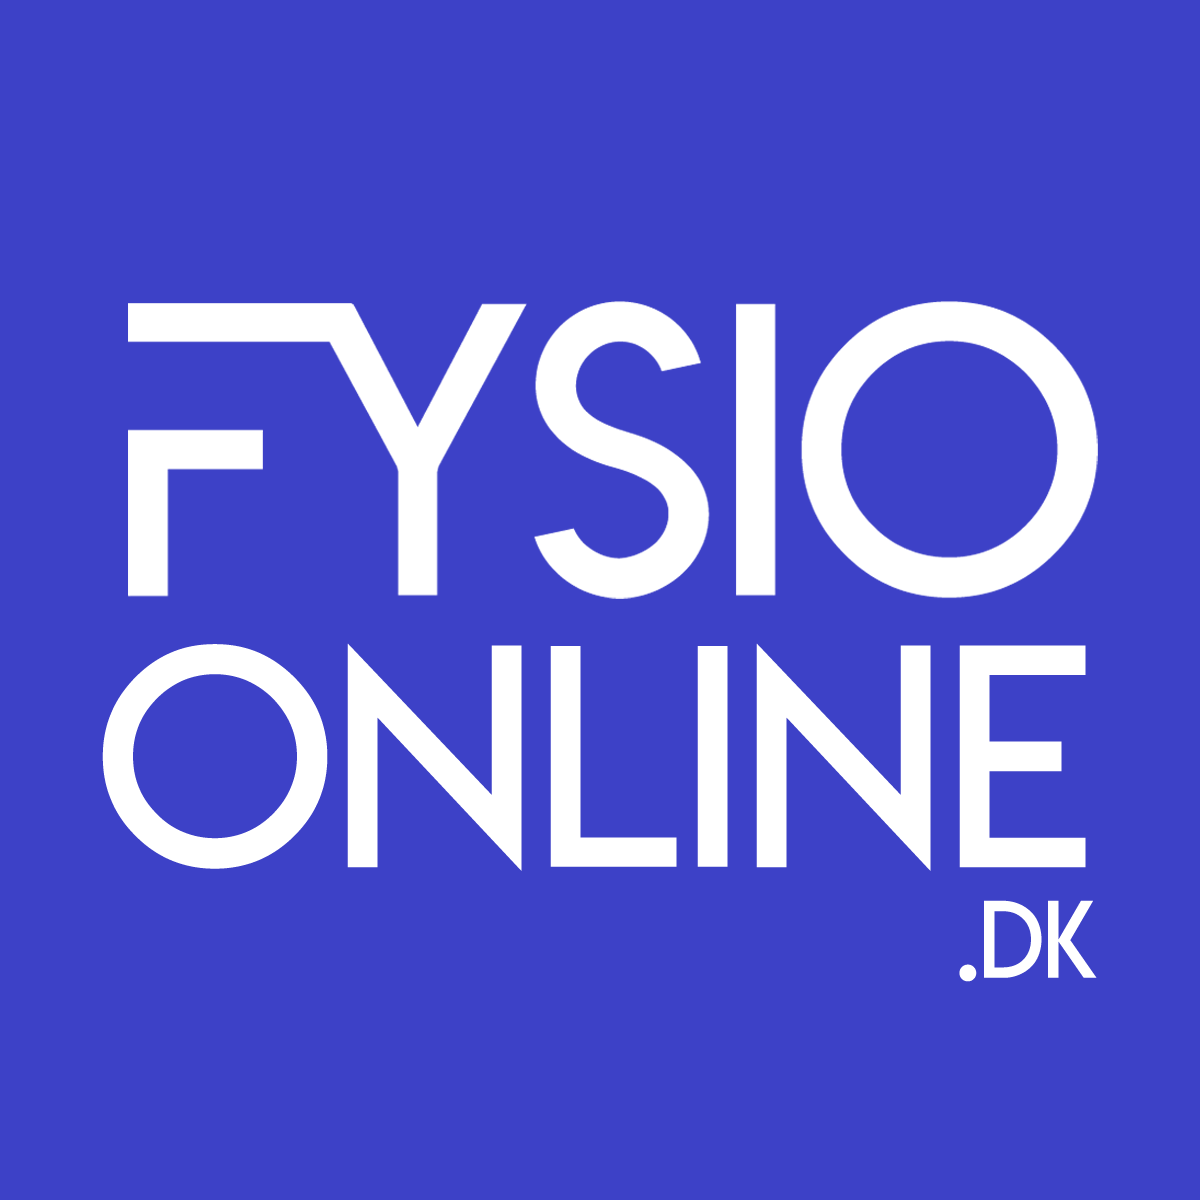 If you get injured, then we have a cooperation with discounts at Fysio Online